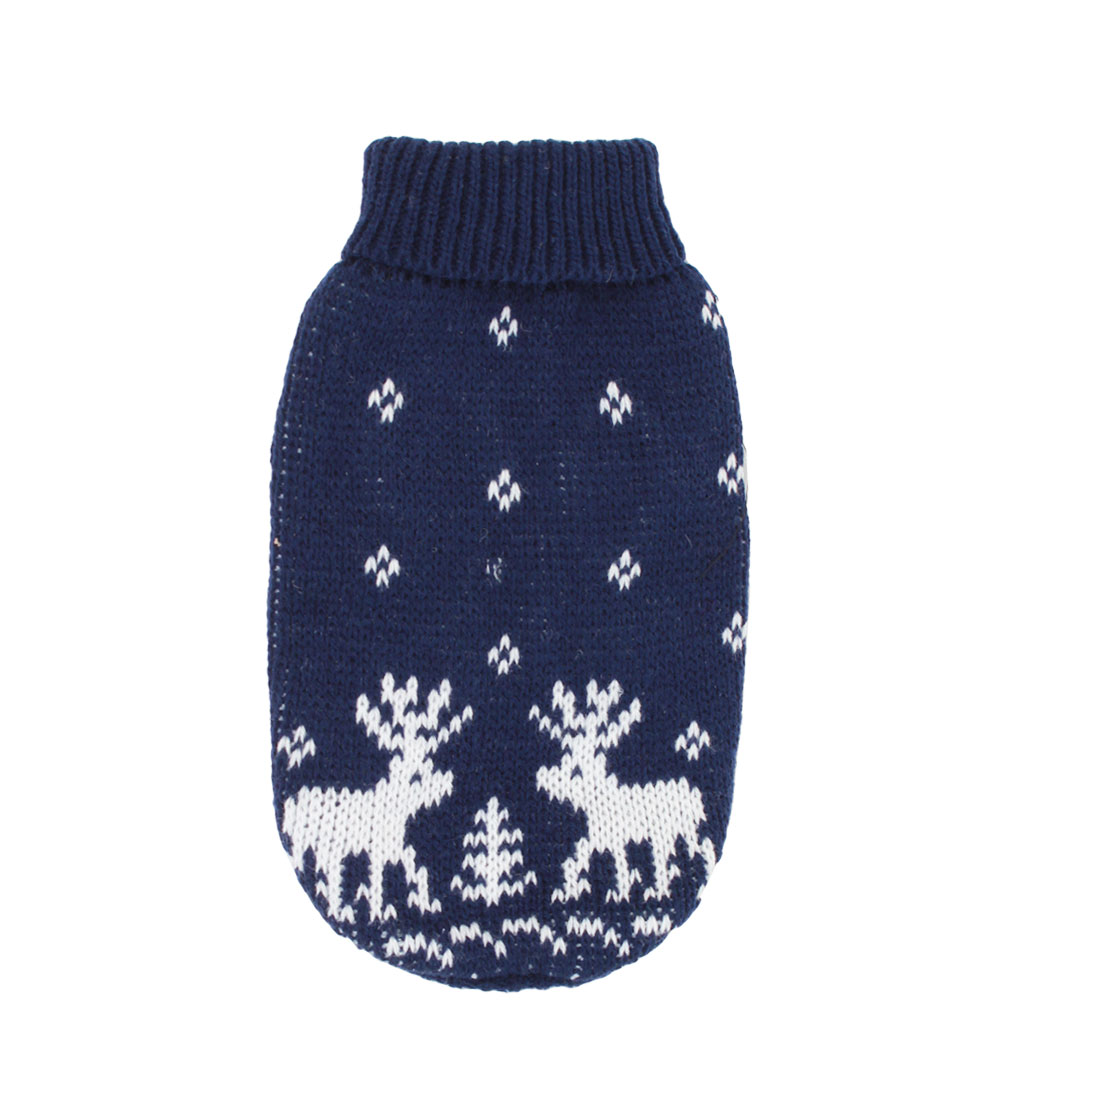 Pet Dog Puppy Ribbed Cuff Knitwear Turtleneck Apparel Sweater Dark Blue White Size XS